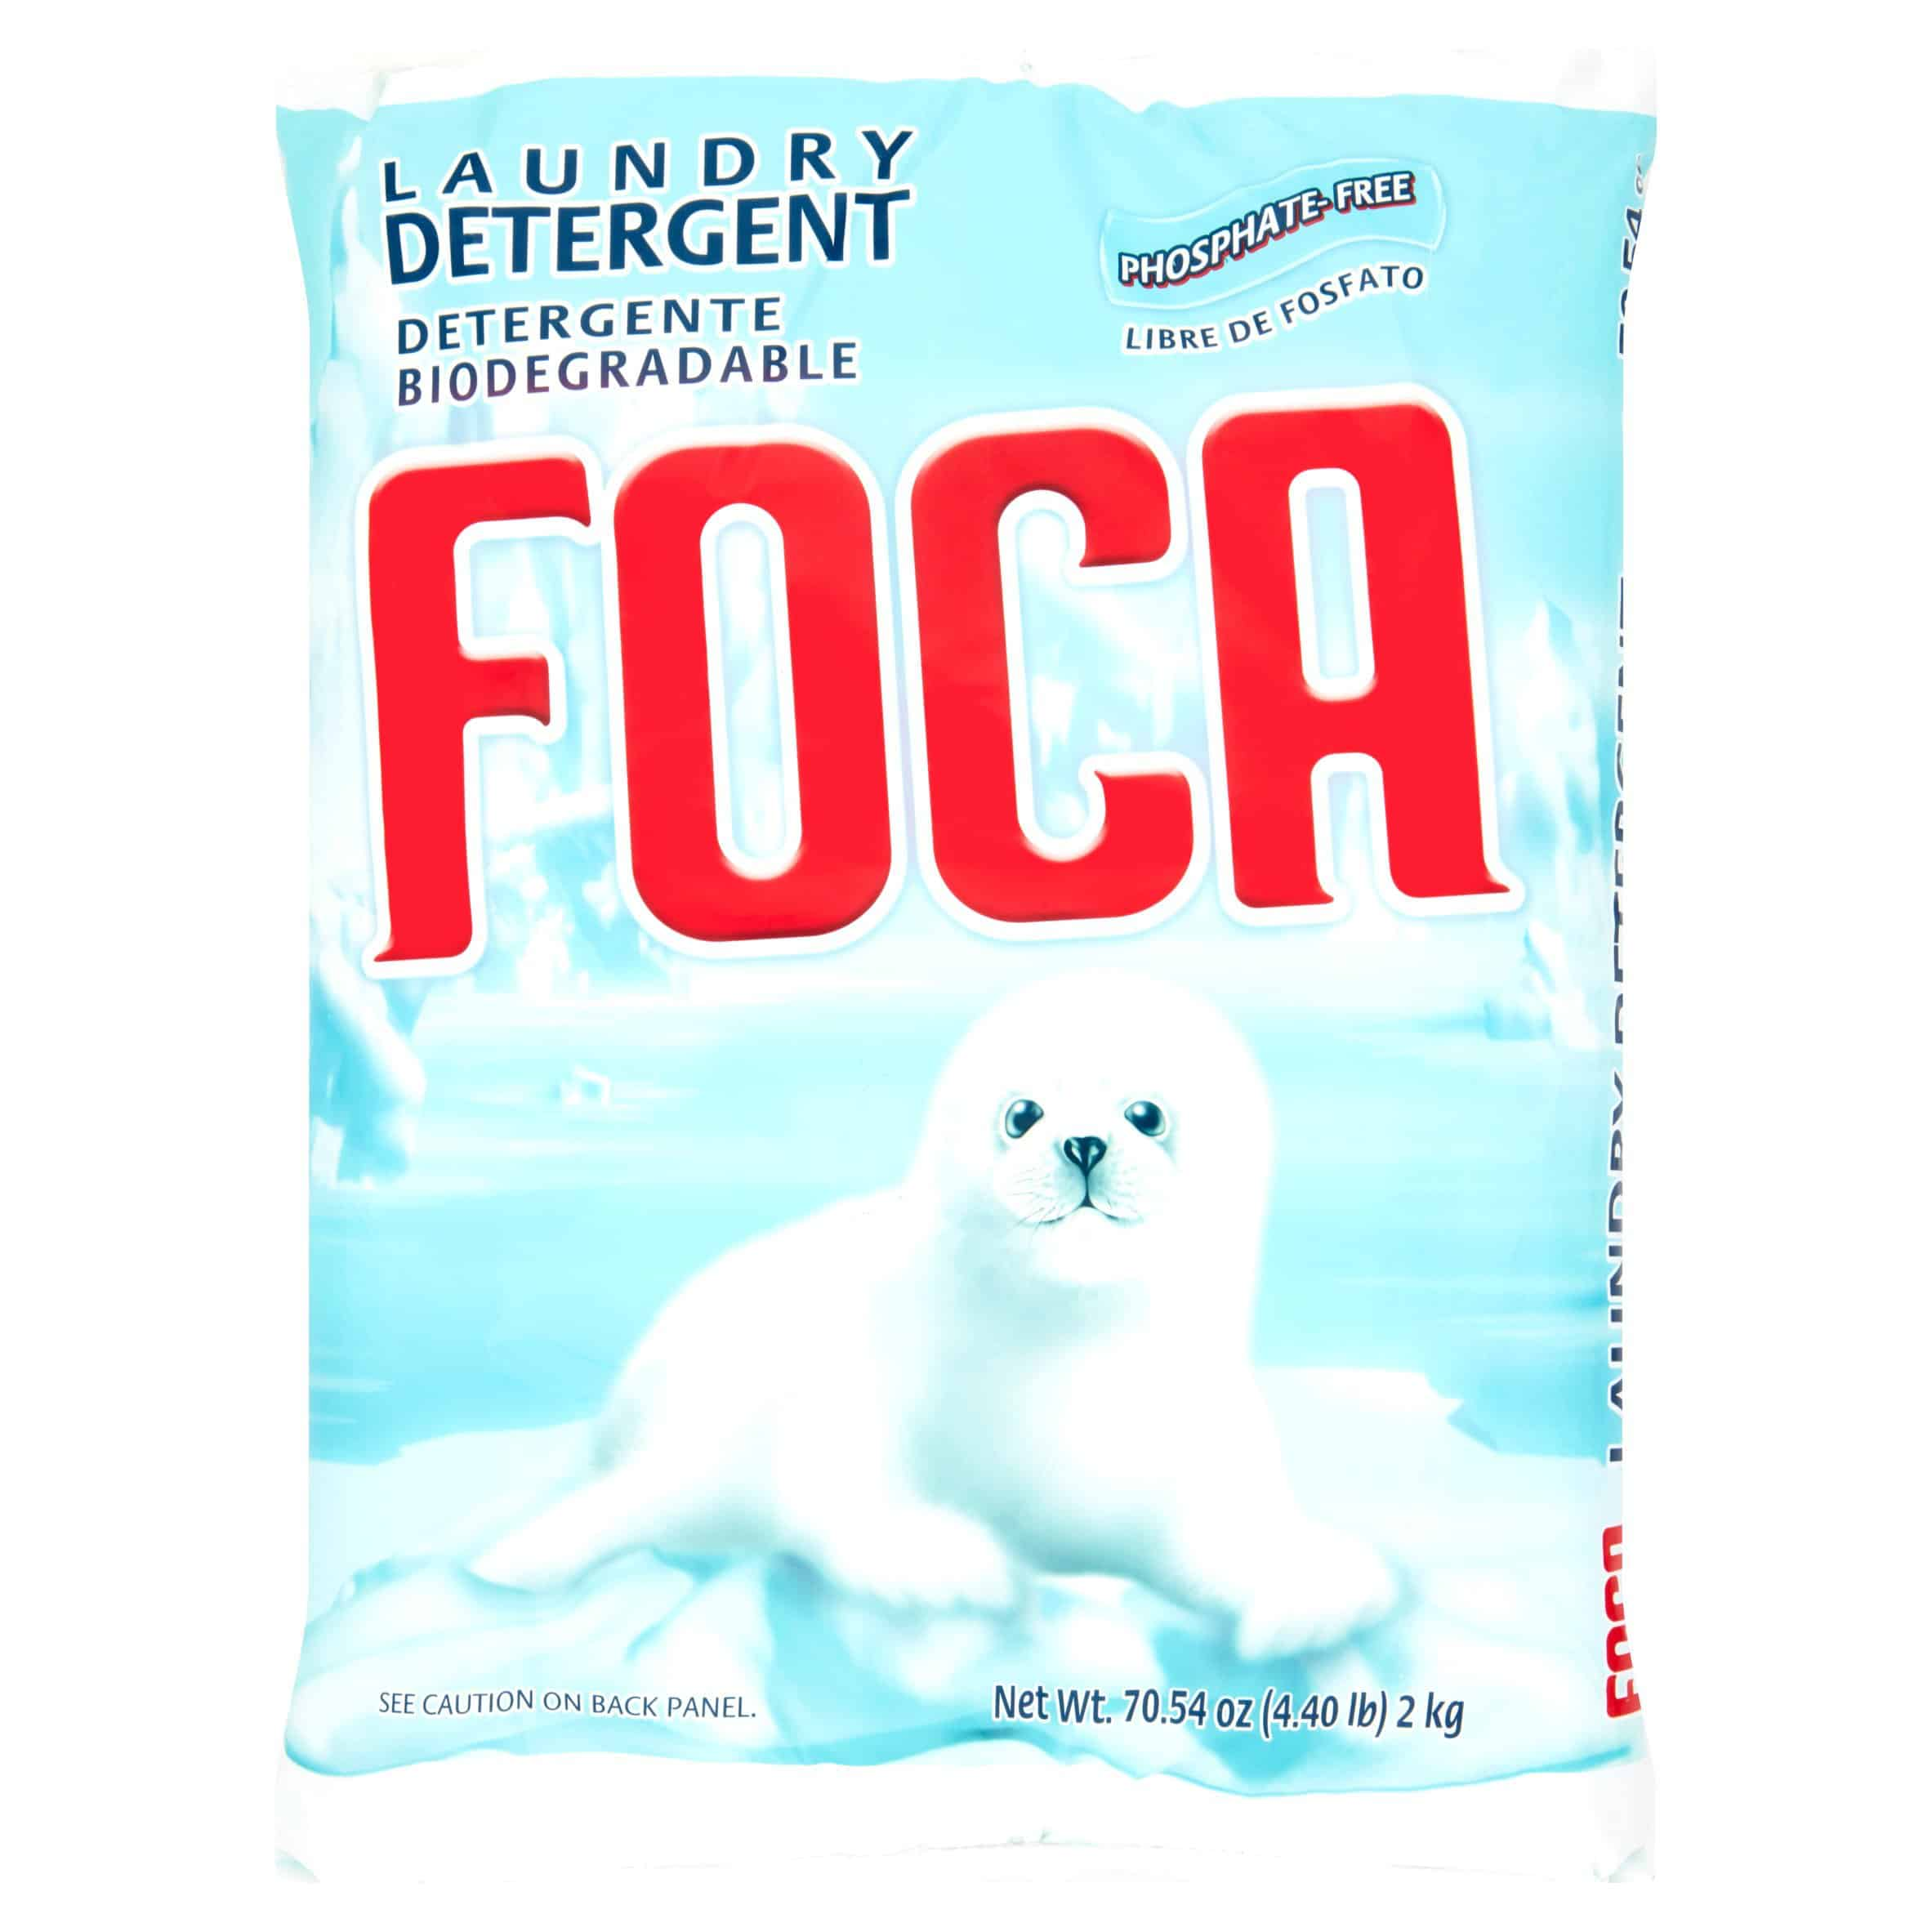 Foca Biodegradable Laundry Detergent, 70.54 oz - Walmart.com